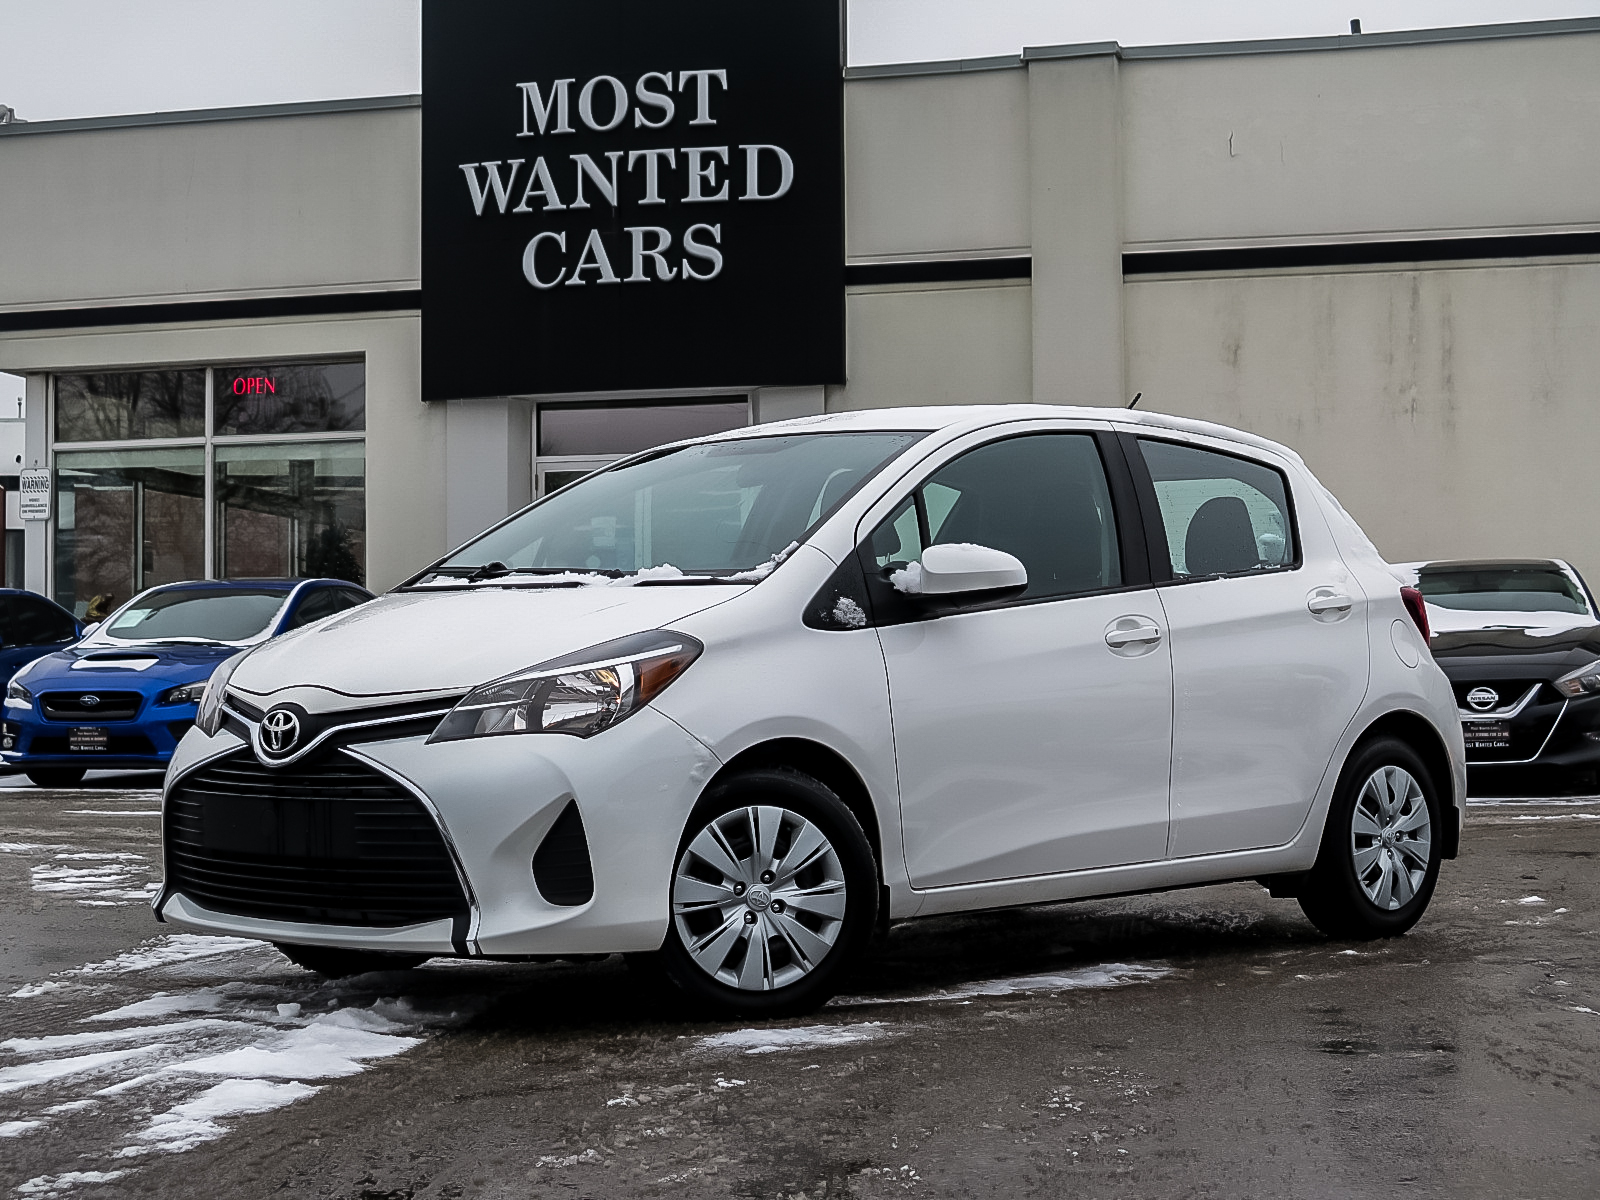 used 2016 Toyota Yaris car, priced at $11,392